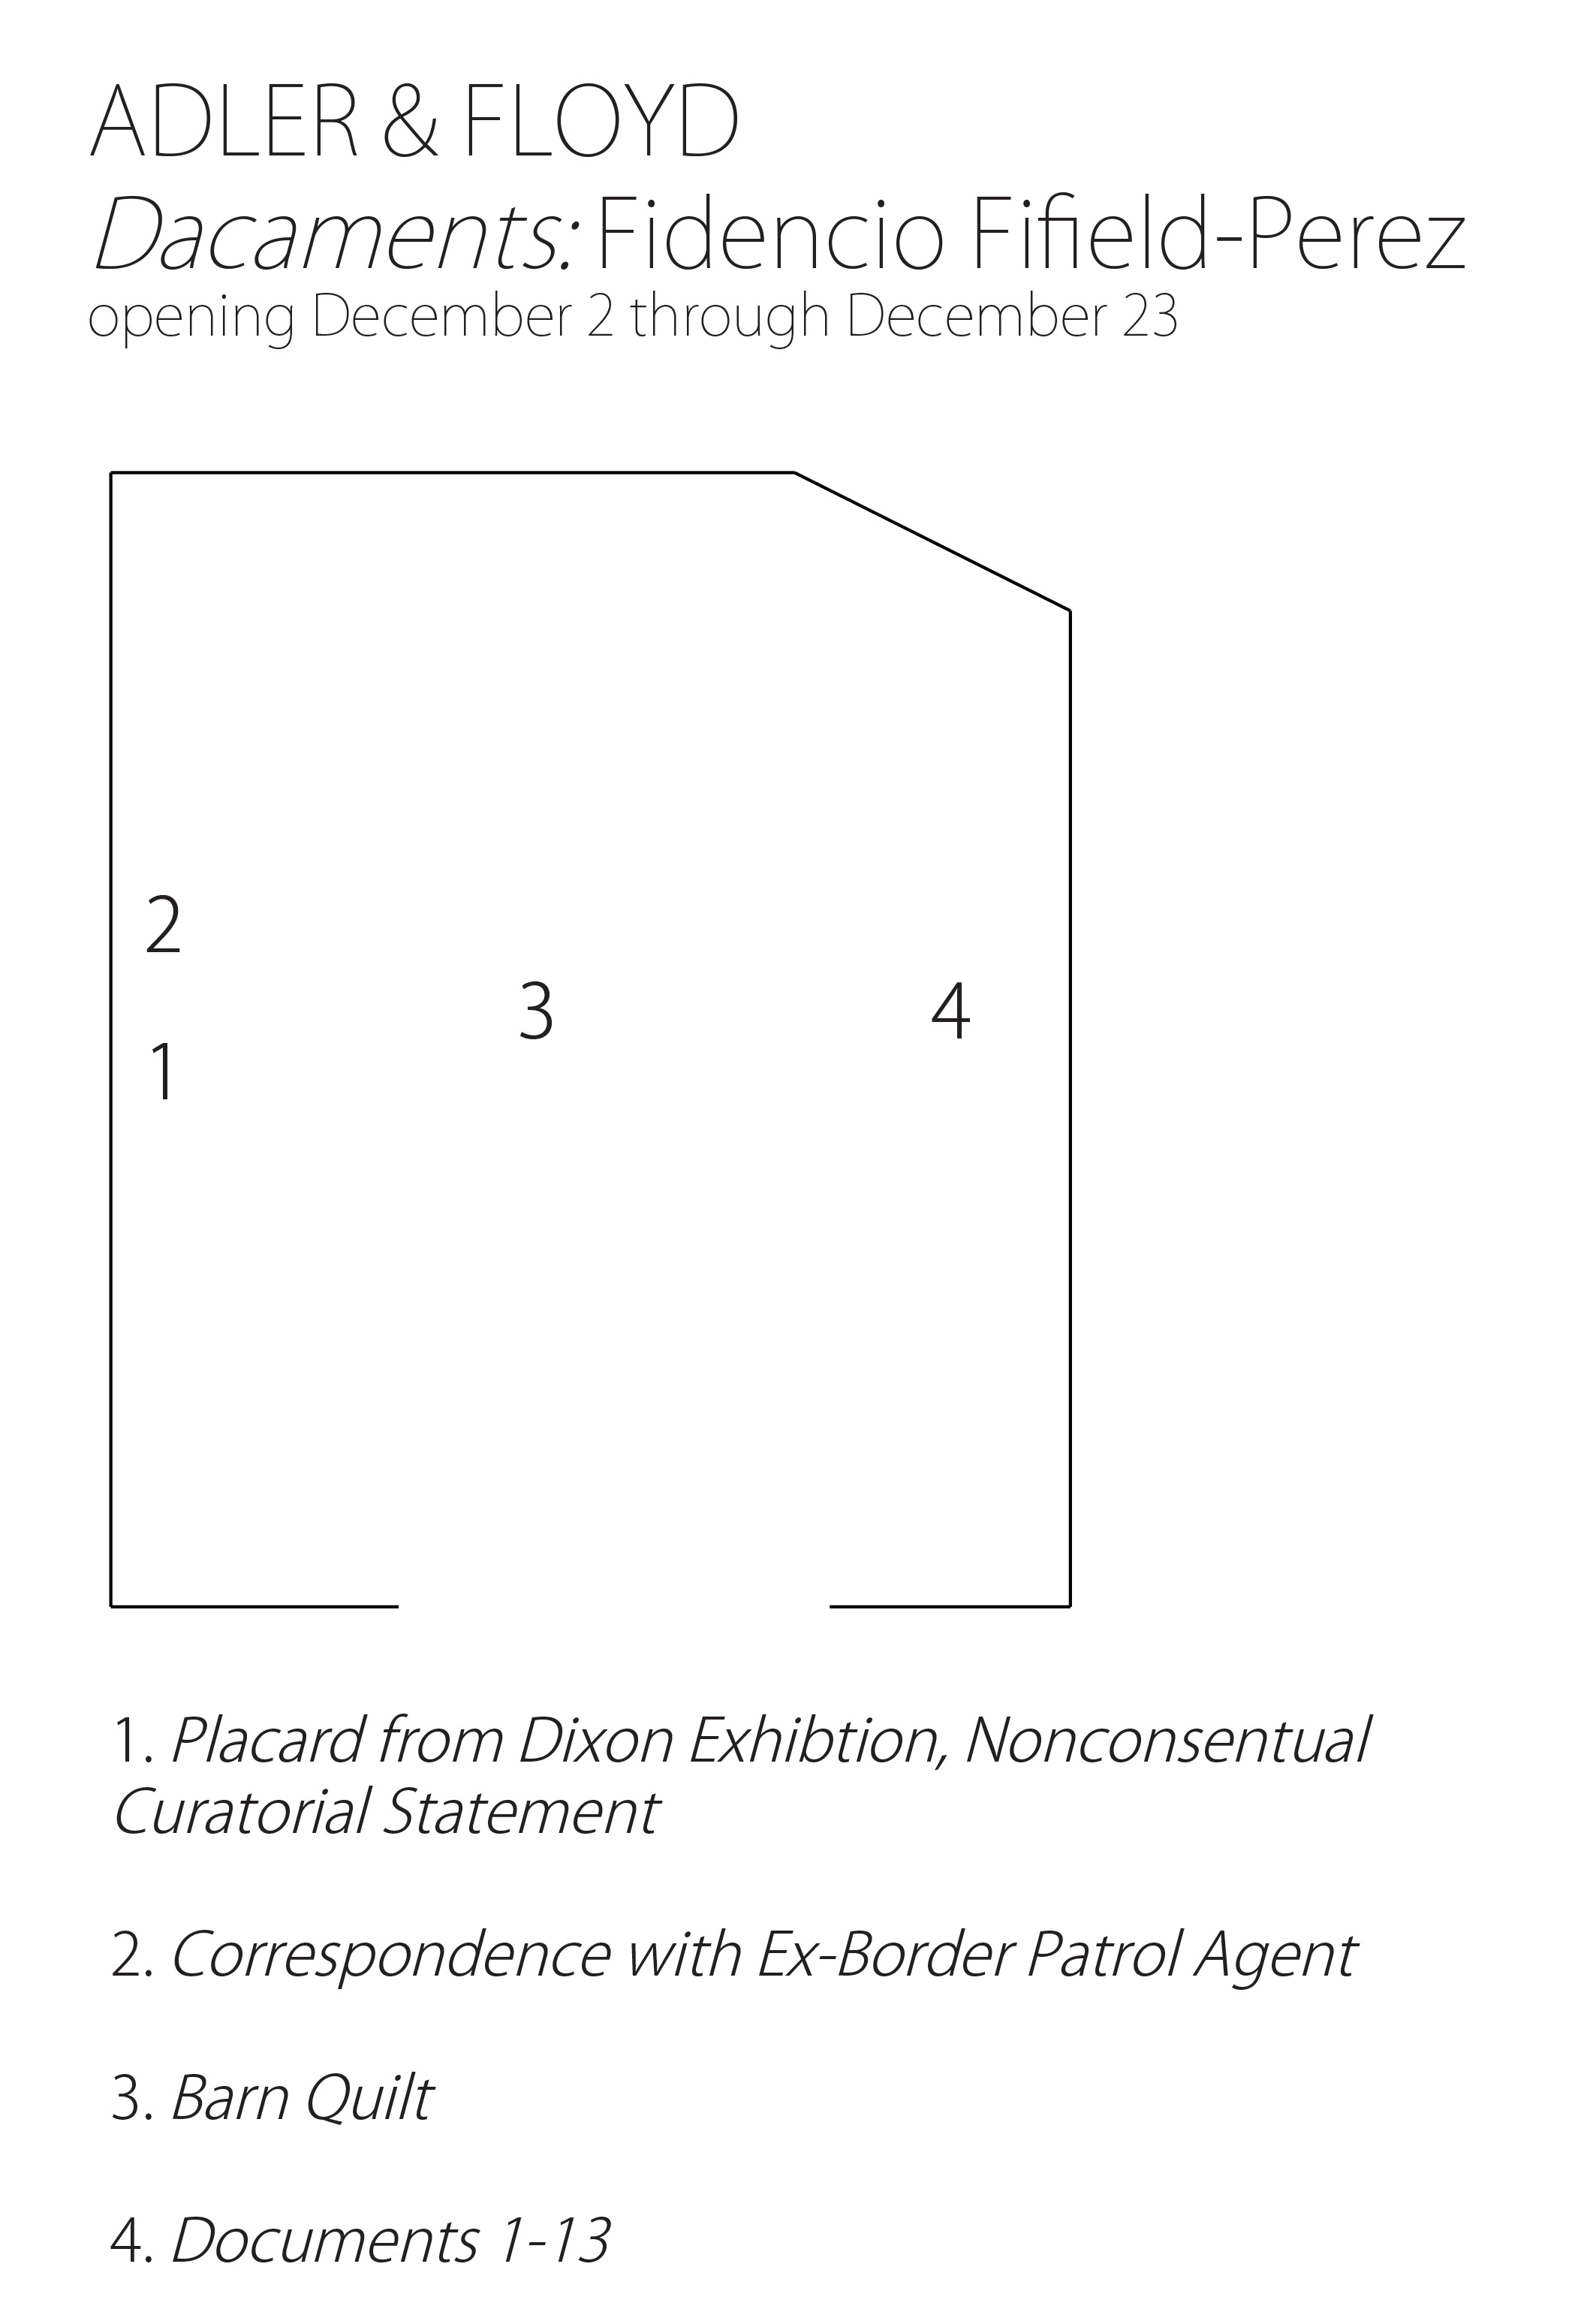 Dacaments floorplan.jpg